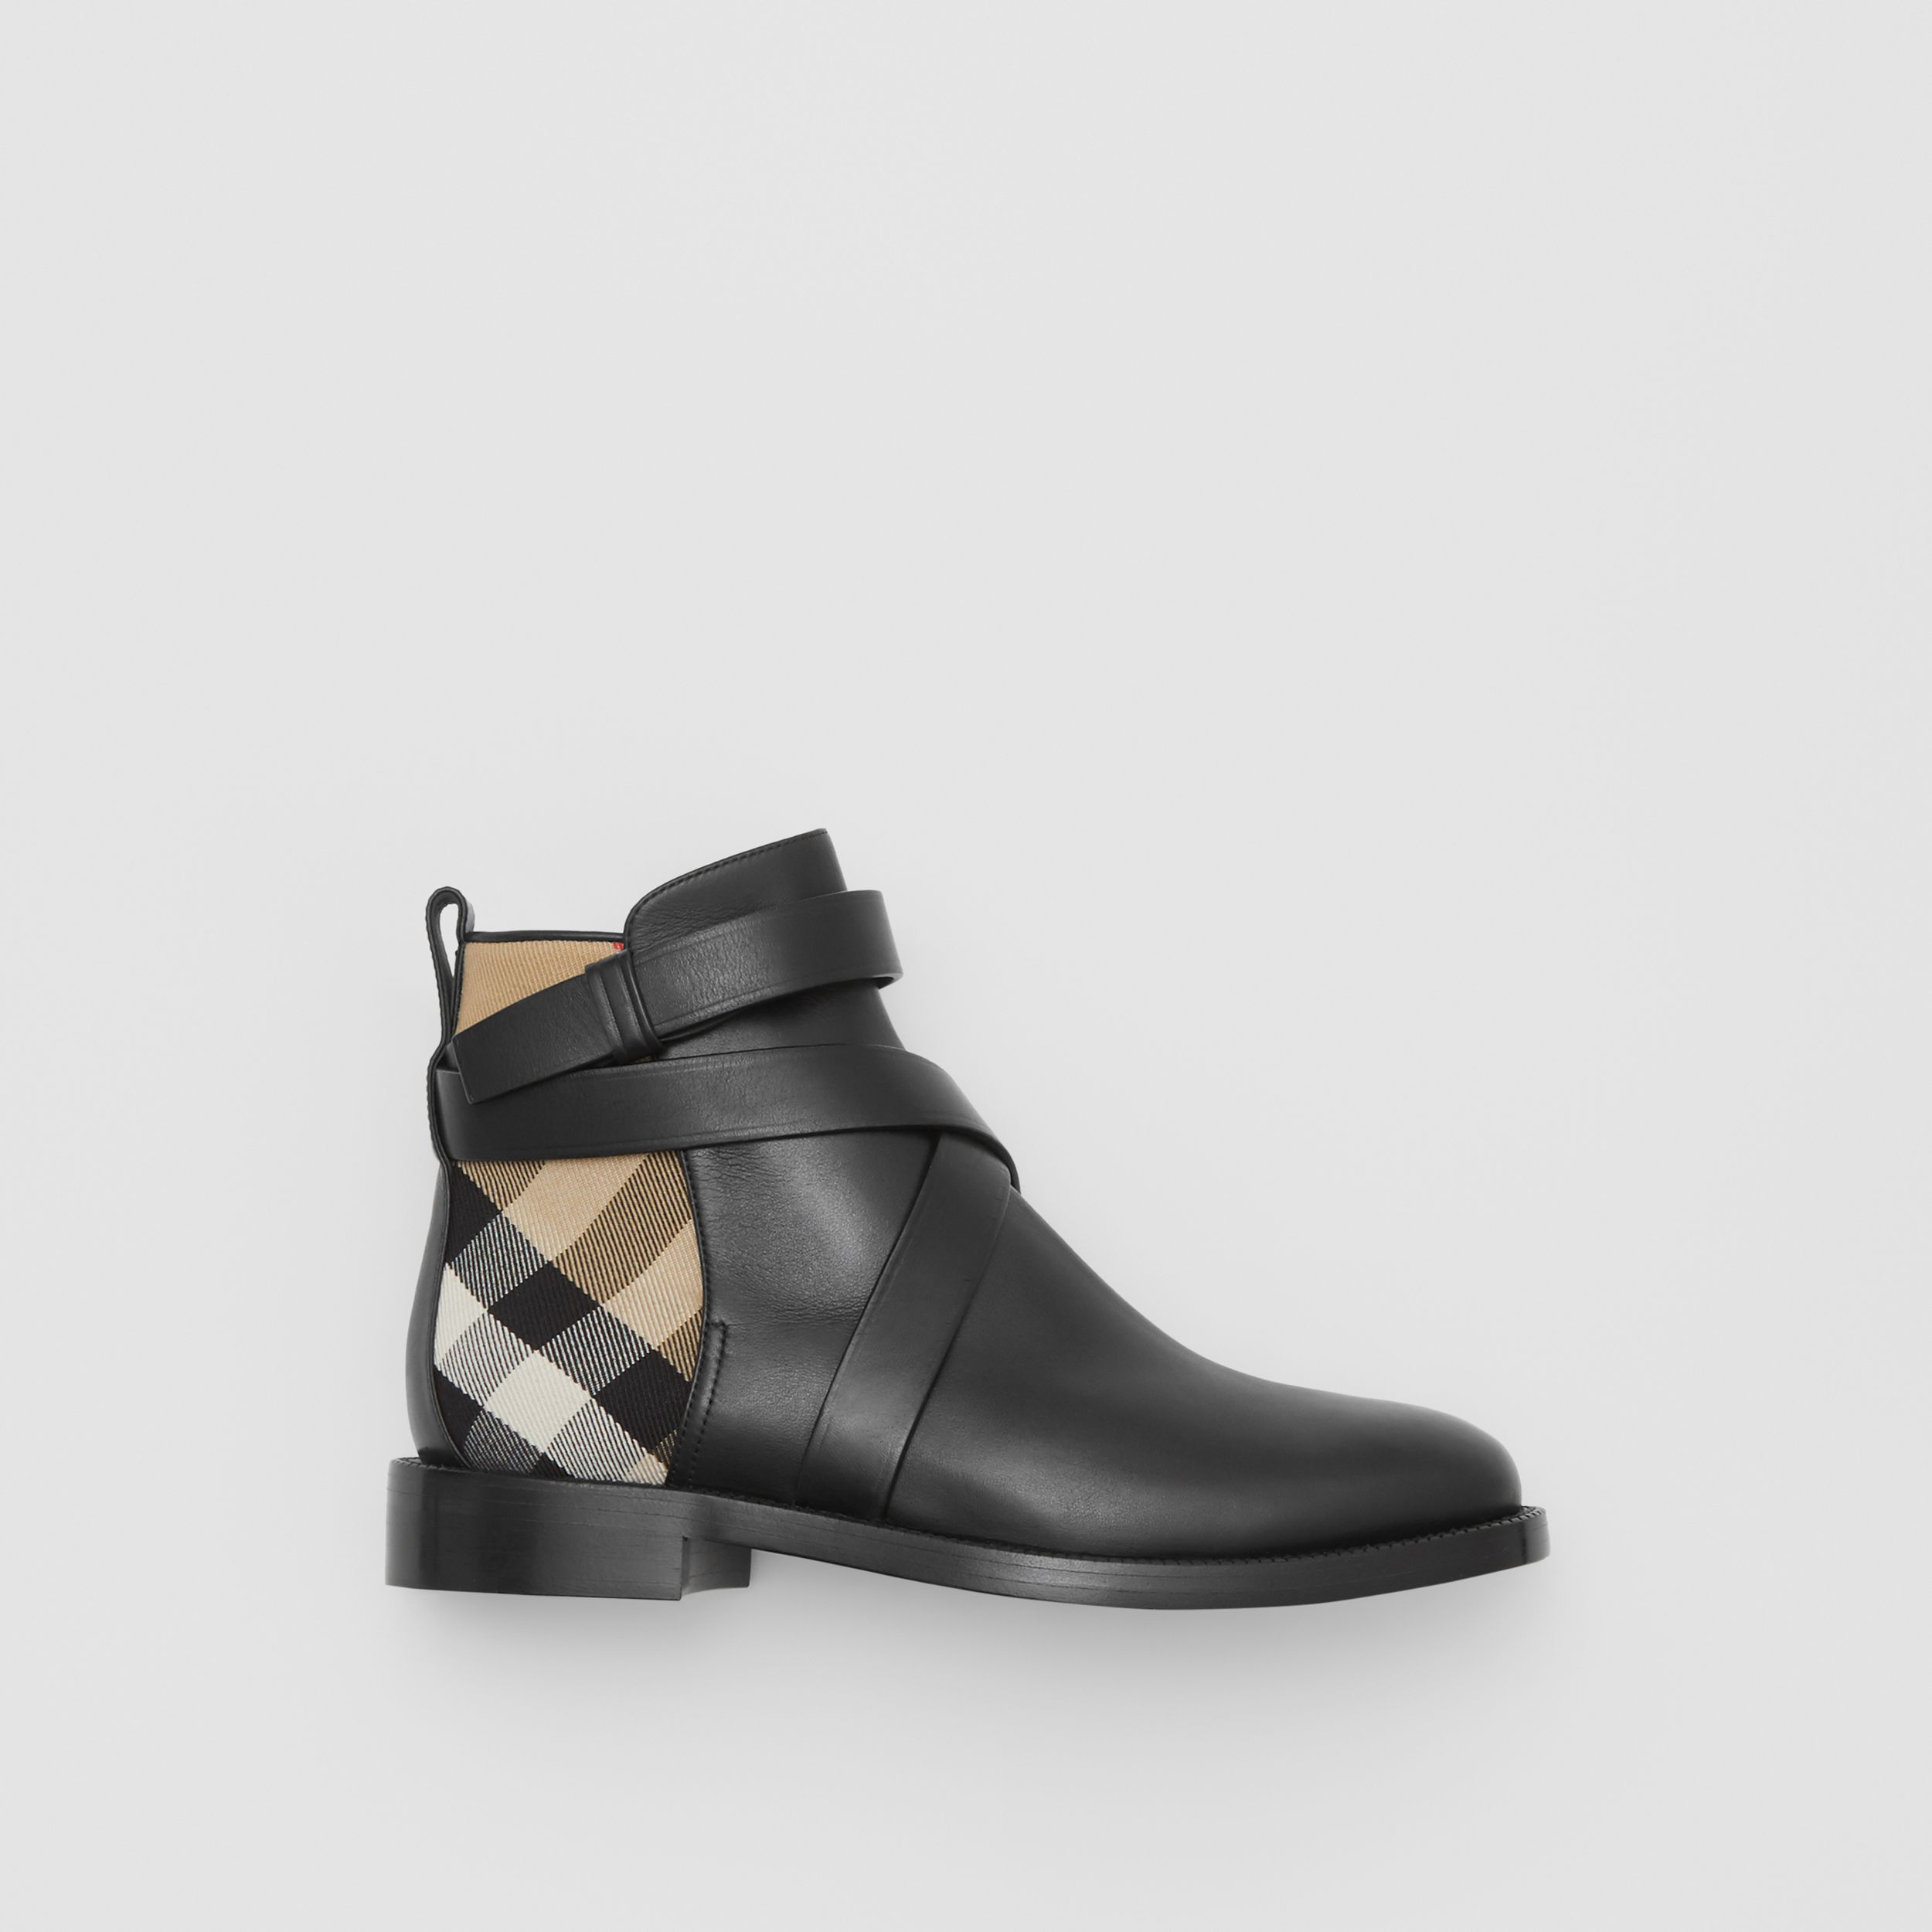 House Check and Leather Ankle Boots in Black/archive Beige - Women | Burberry - 1